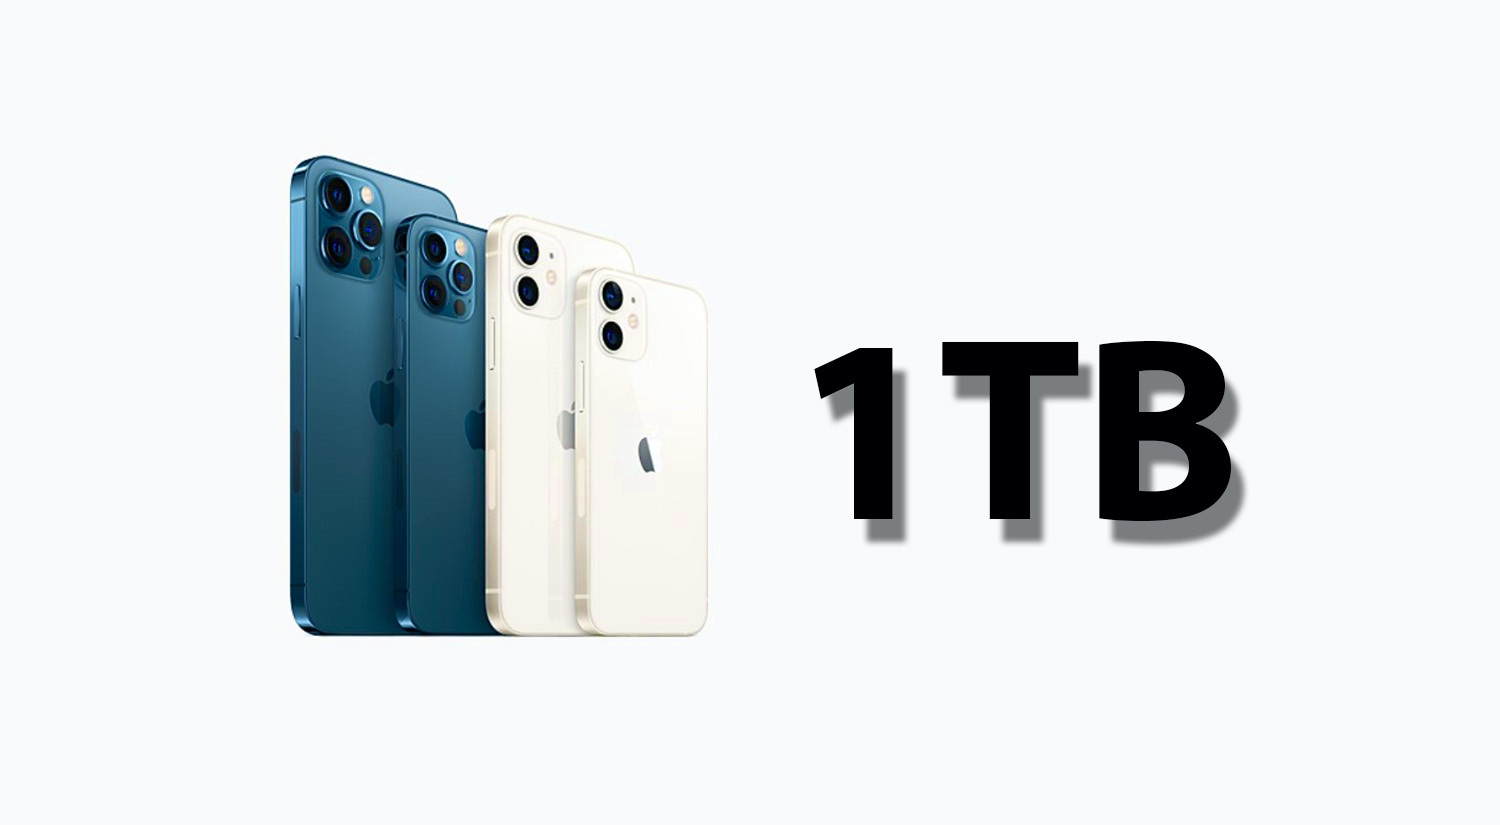 iPhone-13-with-1TB-storage-models